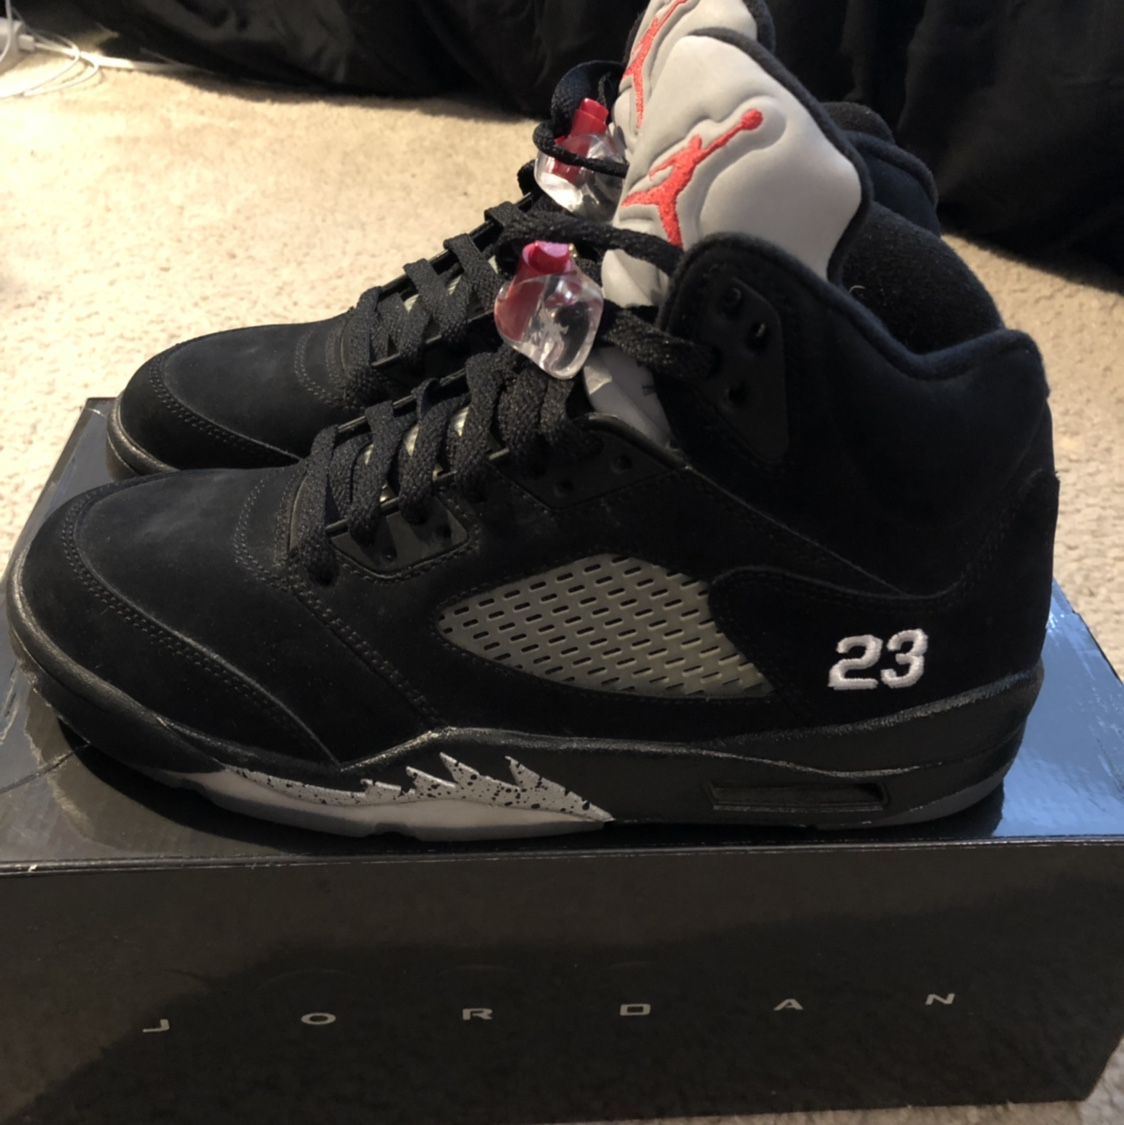 the best attitude bdc0a c6aa3 Jordan Black Metallic 5's (2011) Size 8 Worn less... - Depop